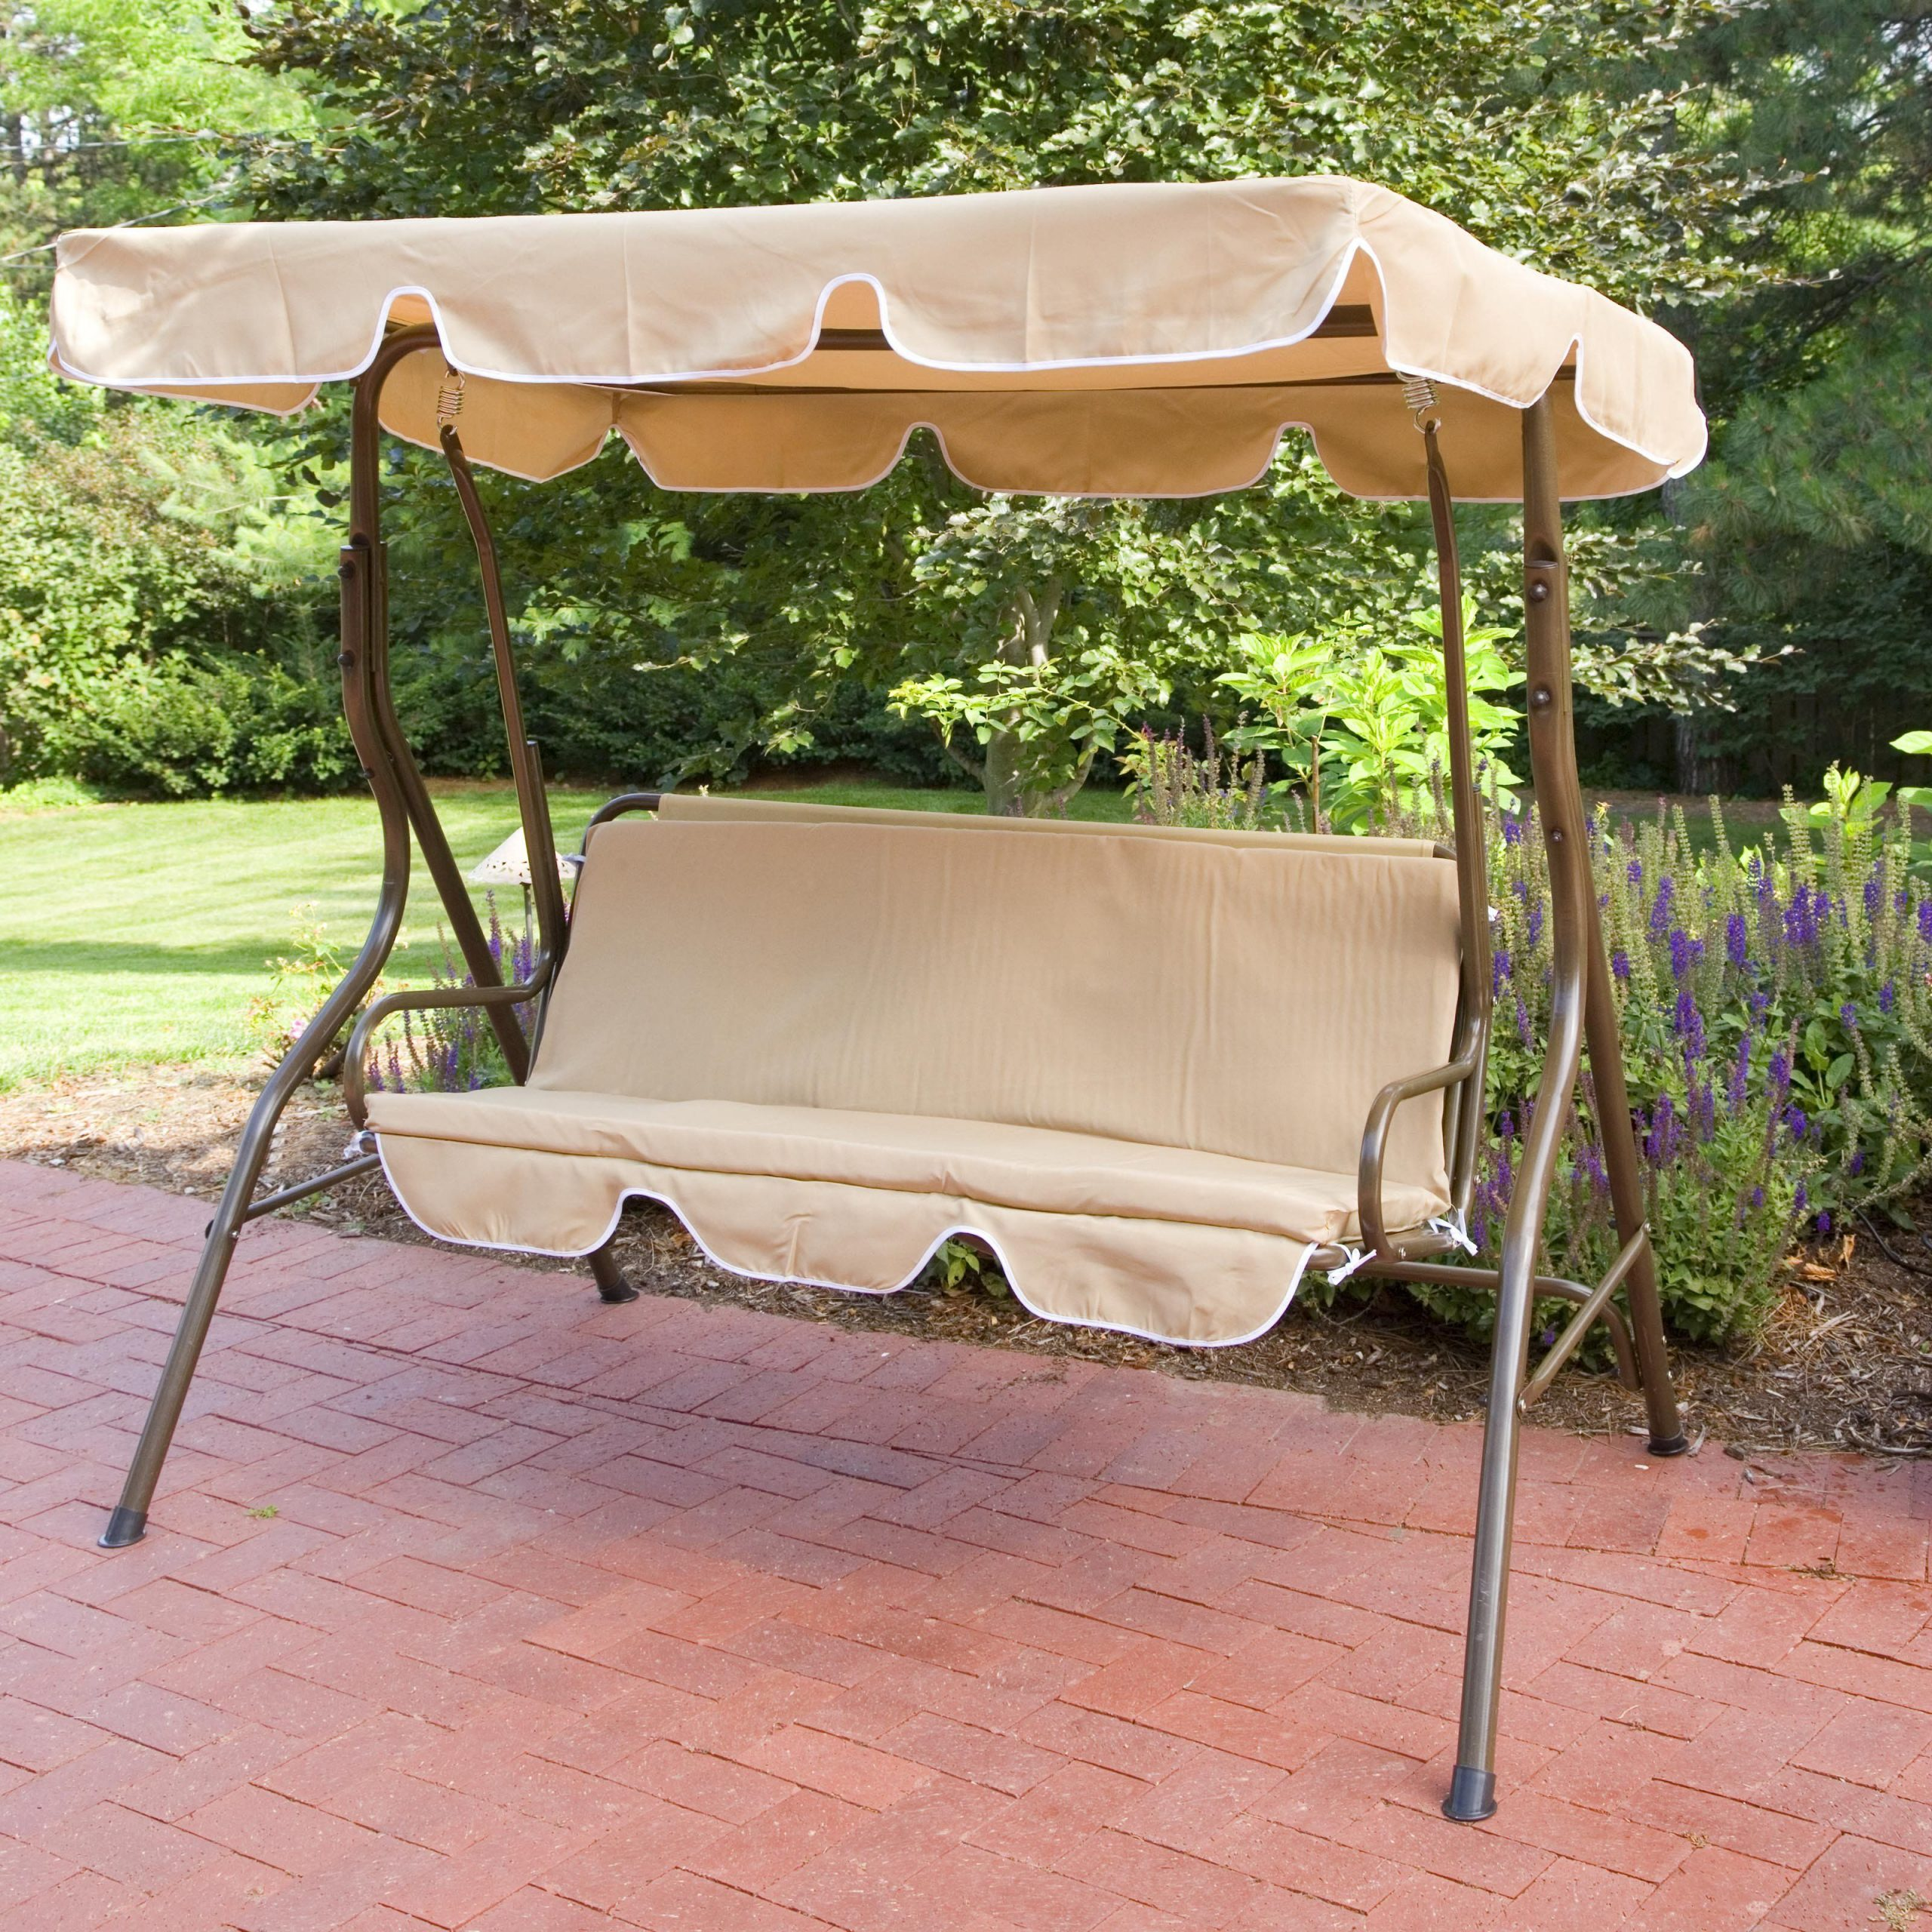 Canopy Swing Set: Ginger Cove 2 Person Canopy Swing With Popular Patio Glider Hammock Porch Swings (View 5 of 30)